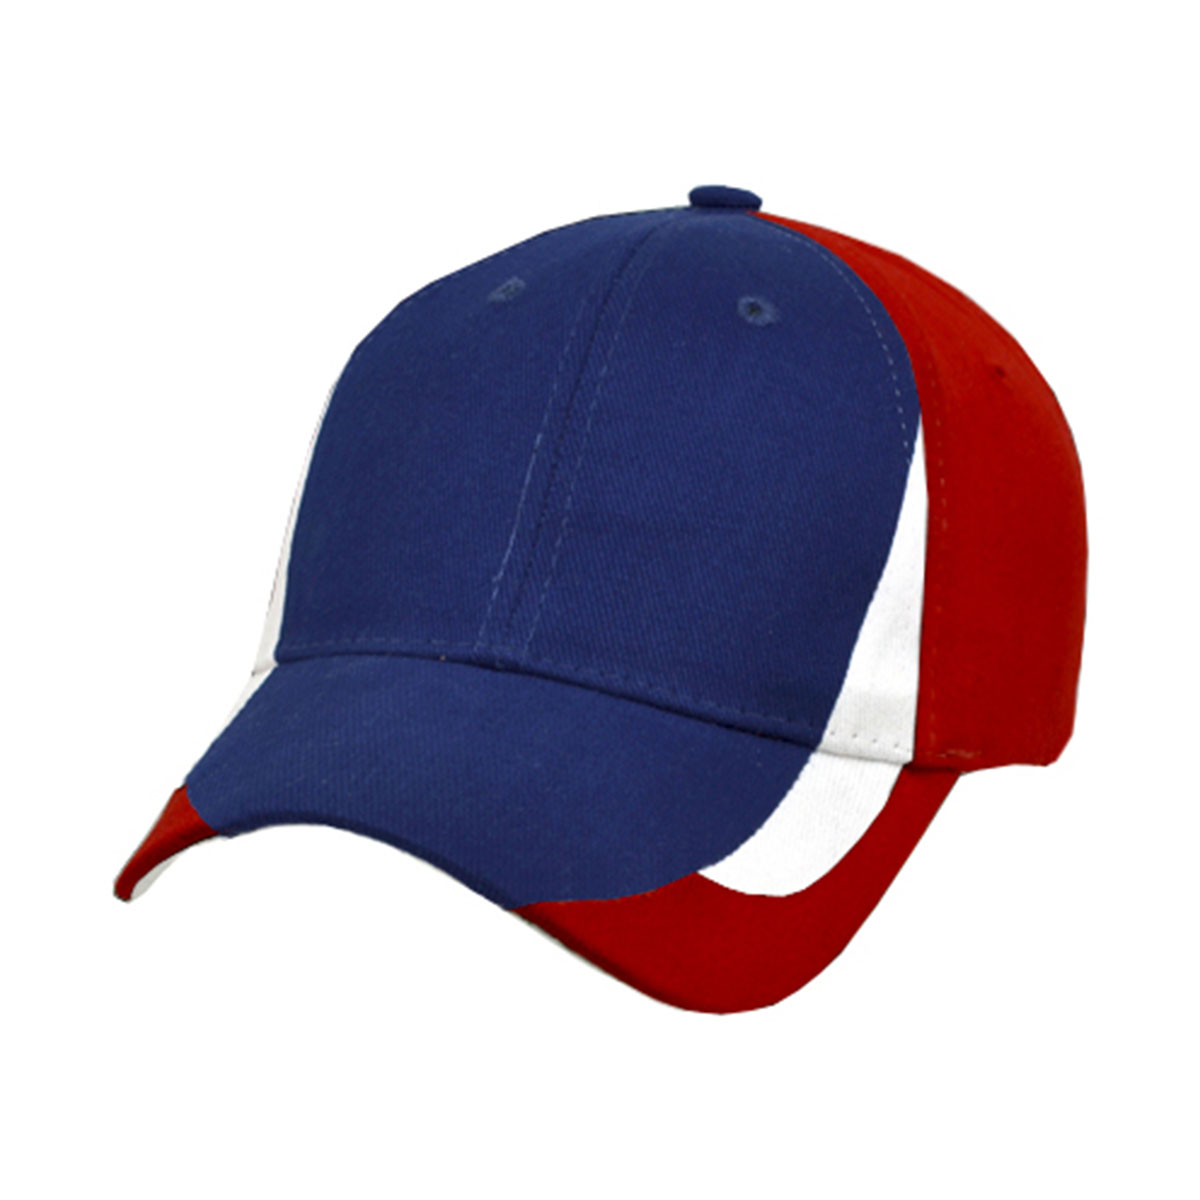 Tribeca Cap-Navy / White / Red